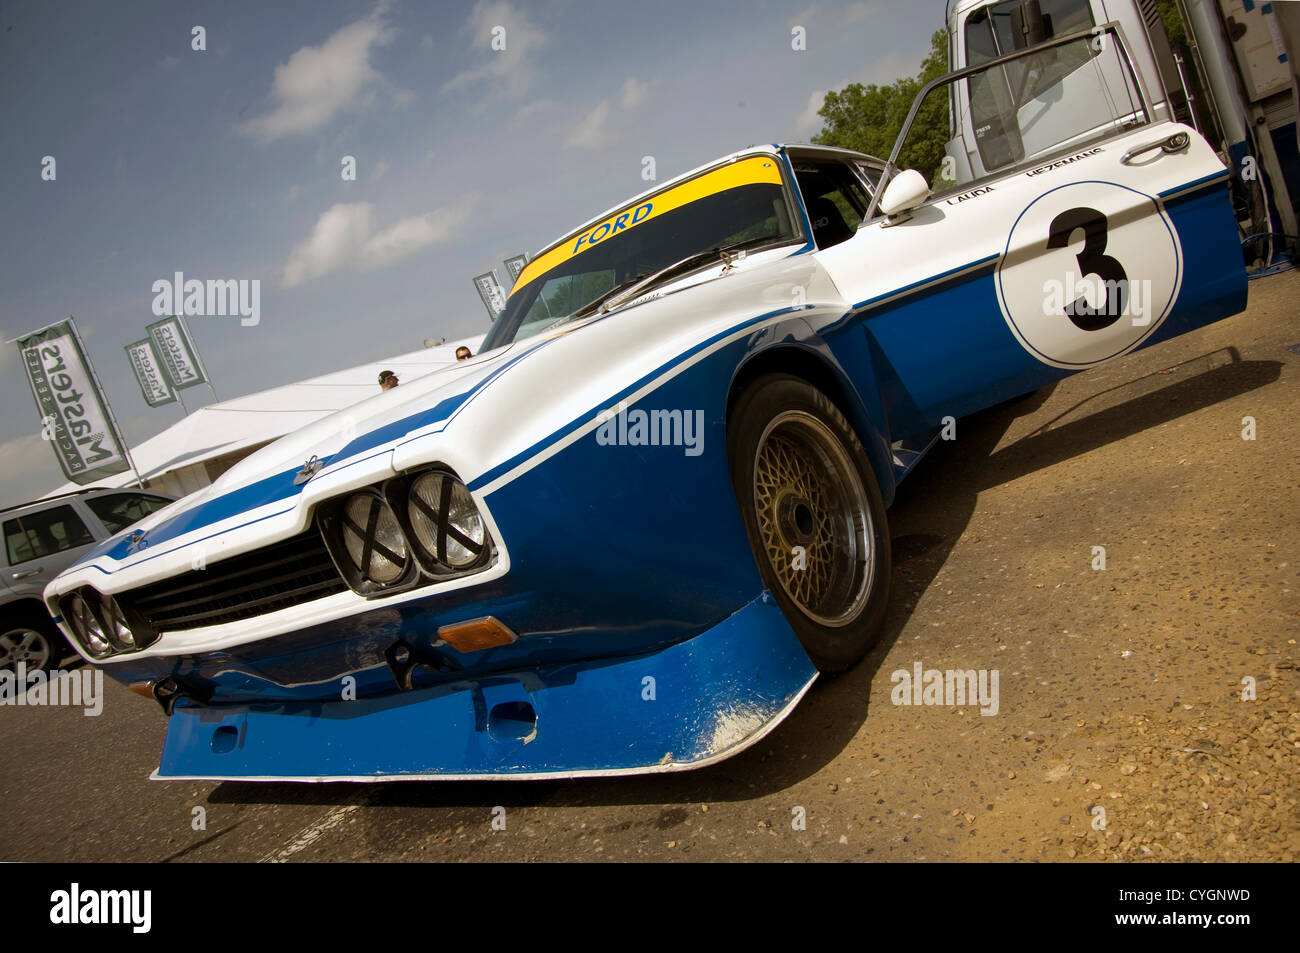 The front of a Ford Cologne Capri historic racing car. - Stock Image